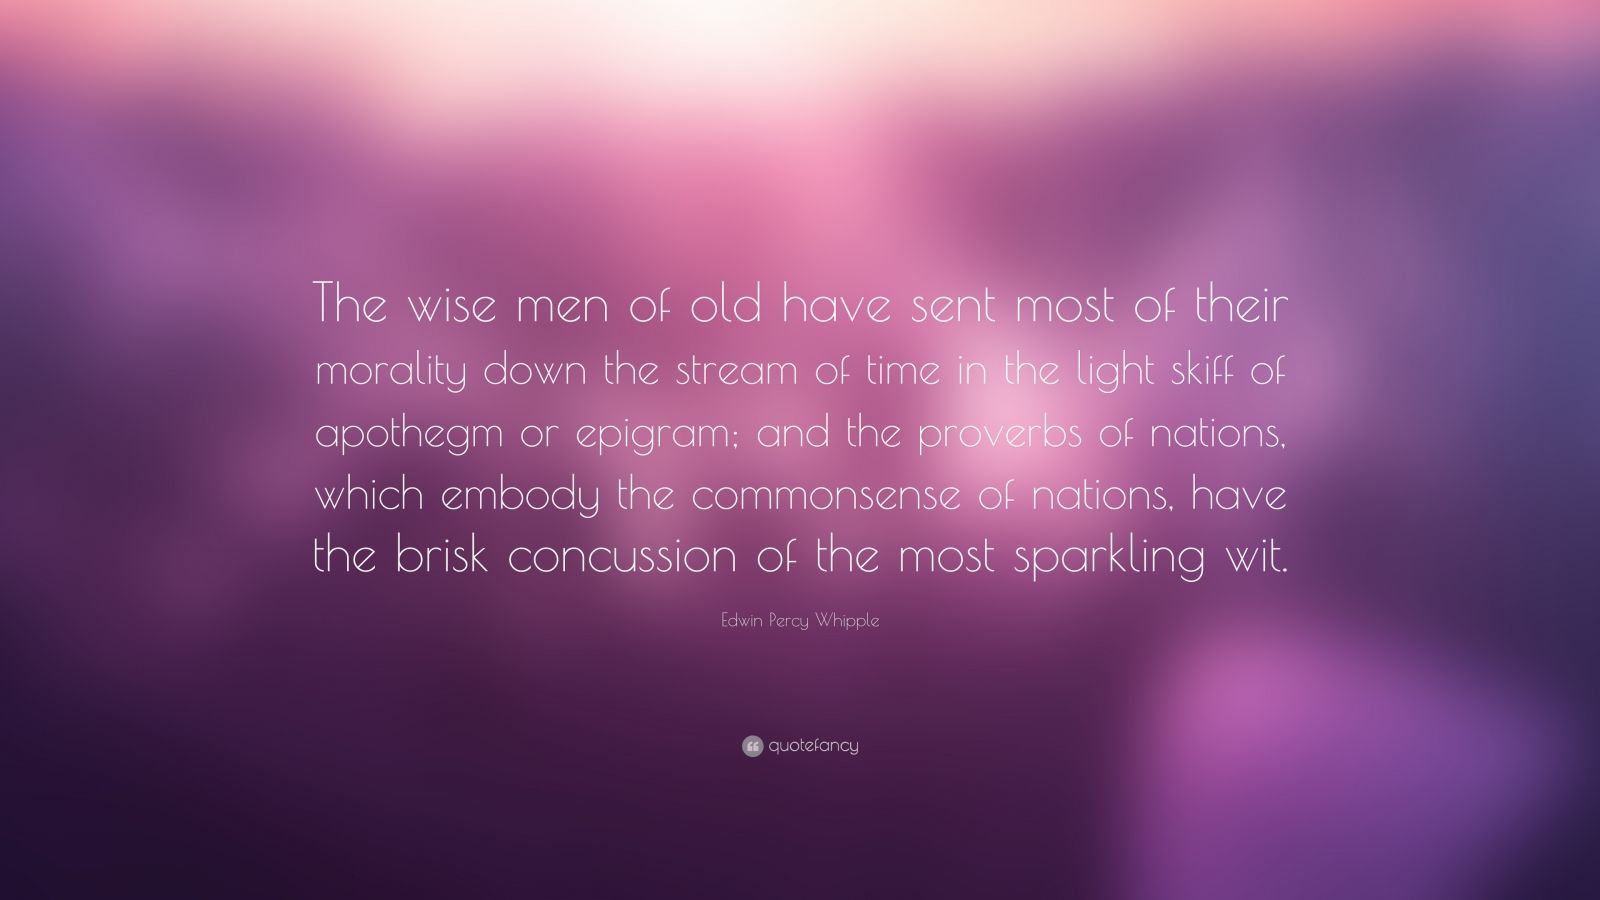 """Edwin Percy Whipple Quote: """"The wise men of old have sent most of their morality down the stream of time in the light skiff of apothegm or epigram; and the proverbs of nations, which embody the commonsense of nations, have the brisk concussion of the most sparkling wit."""""""